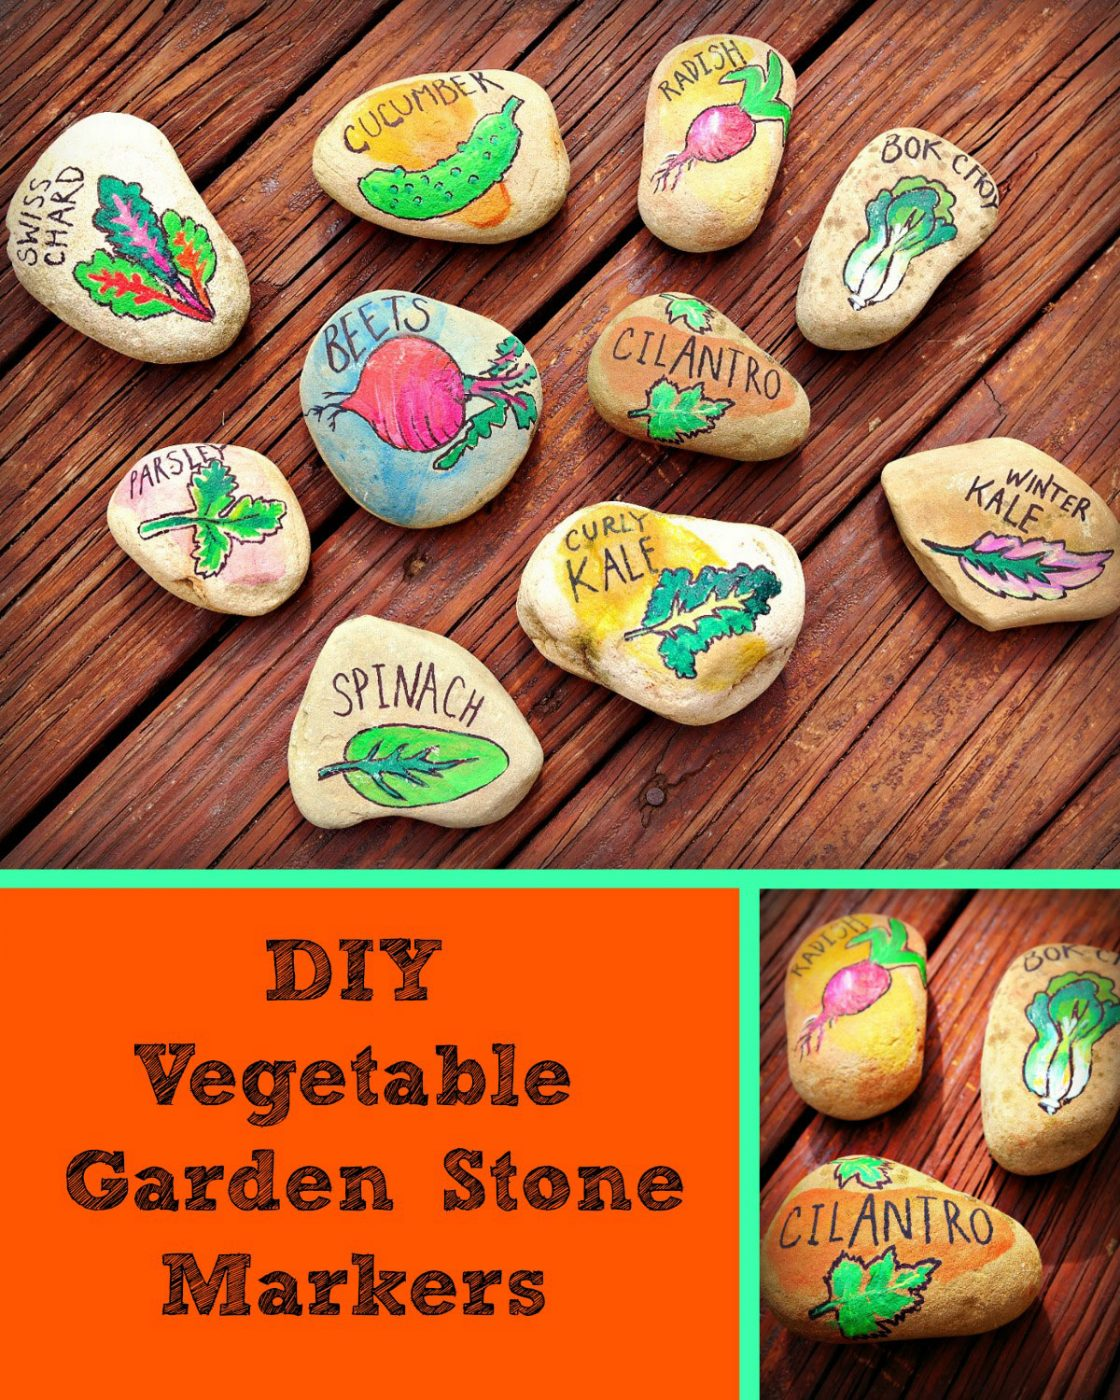 DIY Vegetable Garden Stone Markers